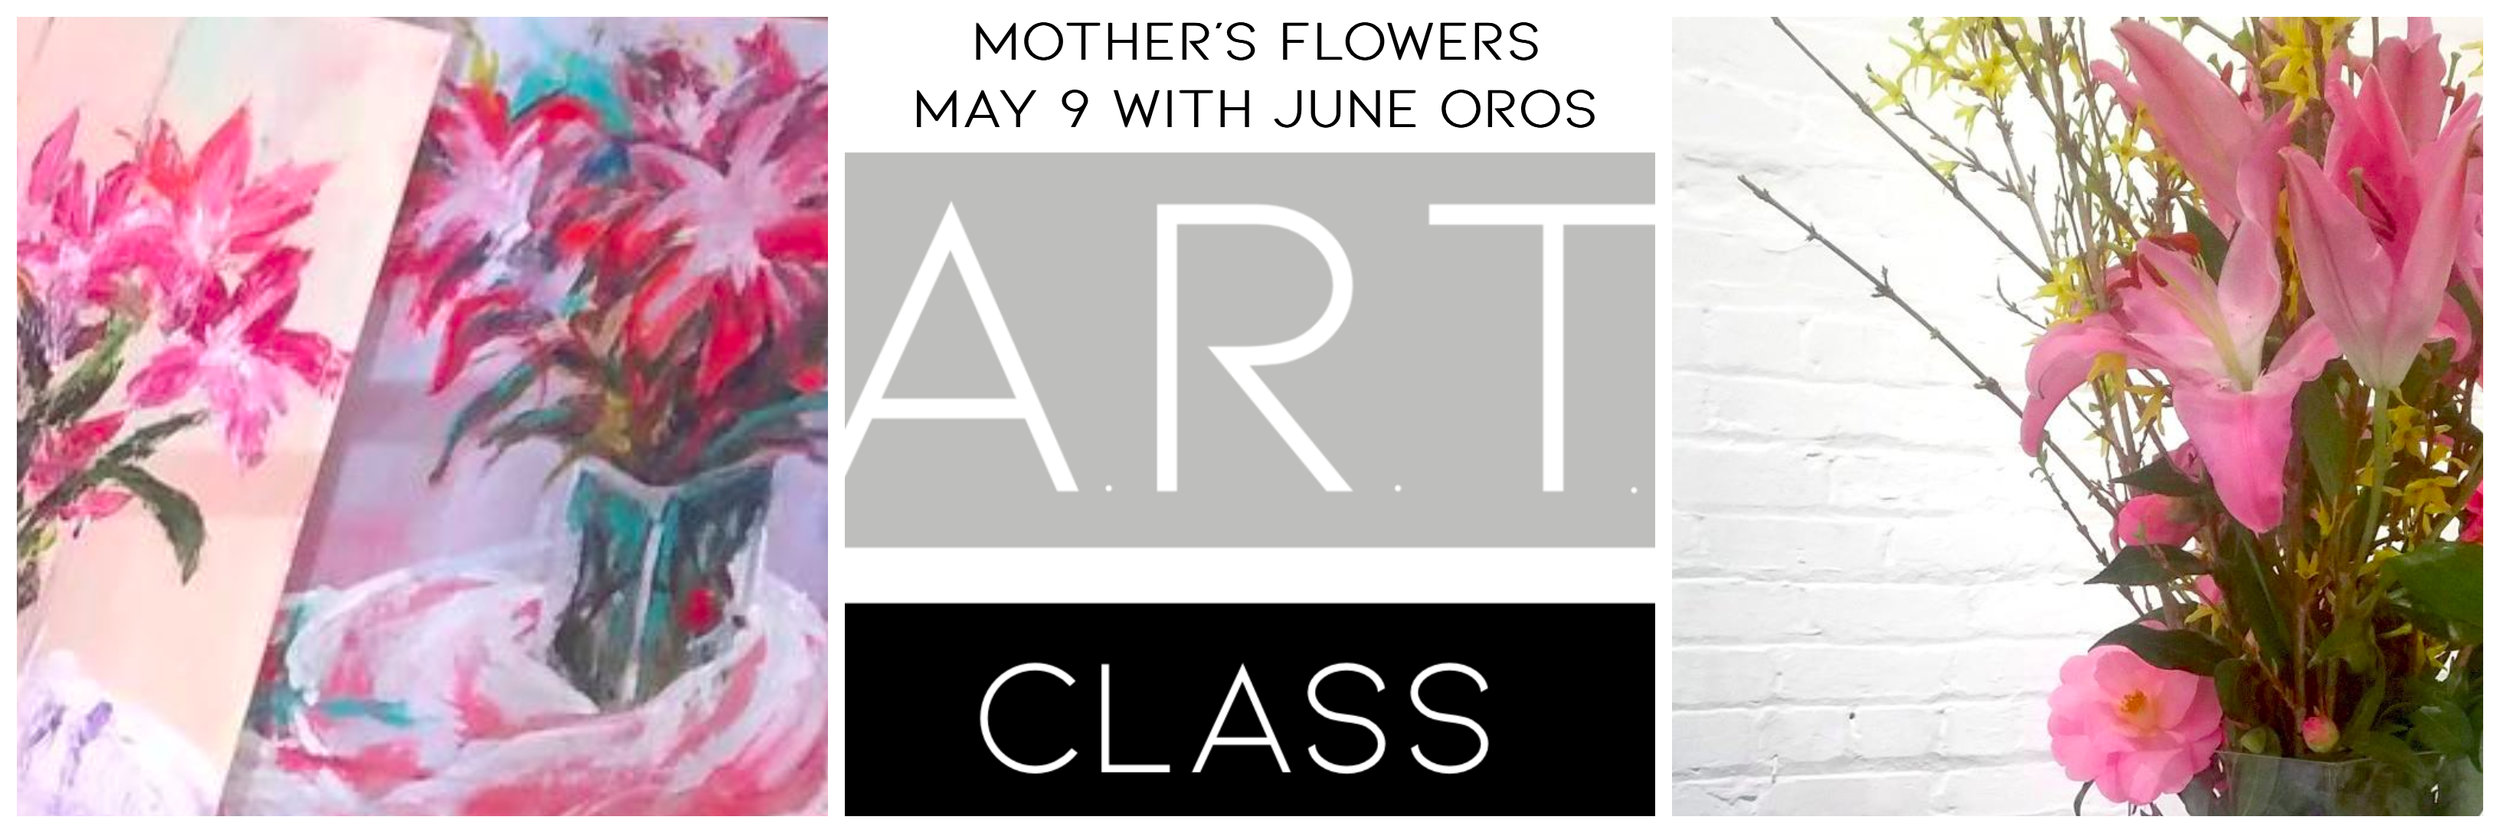 MOTHER'S FLOWERSMay 9June Oros - 10a-1pPaint a floral for Mother's Day or bring your Mom or friends to have a day of painting together. We also have gift certificates available for future ART classes.Class $85All materials will be provided.All experience levels are welcome.If you have a favorite paint or set of brushes,you are more than welcome to use them.Snacks & Sips will be provided. You are welcome to bring something to share.For more details and for tickets, click below.